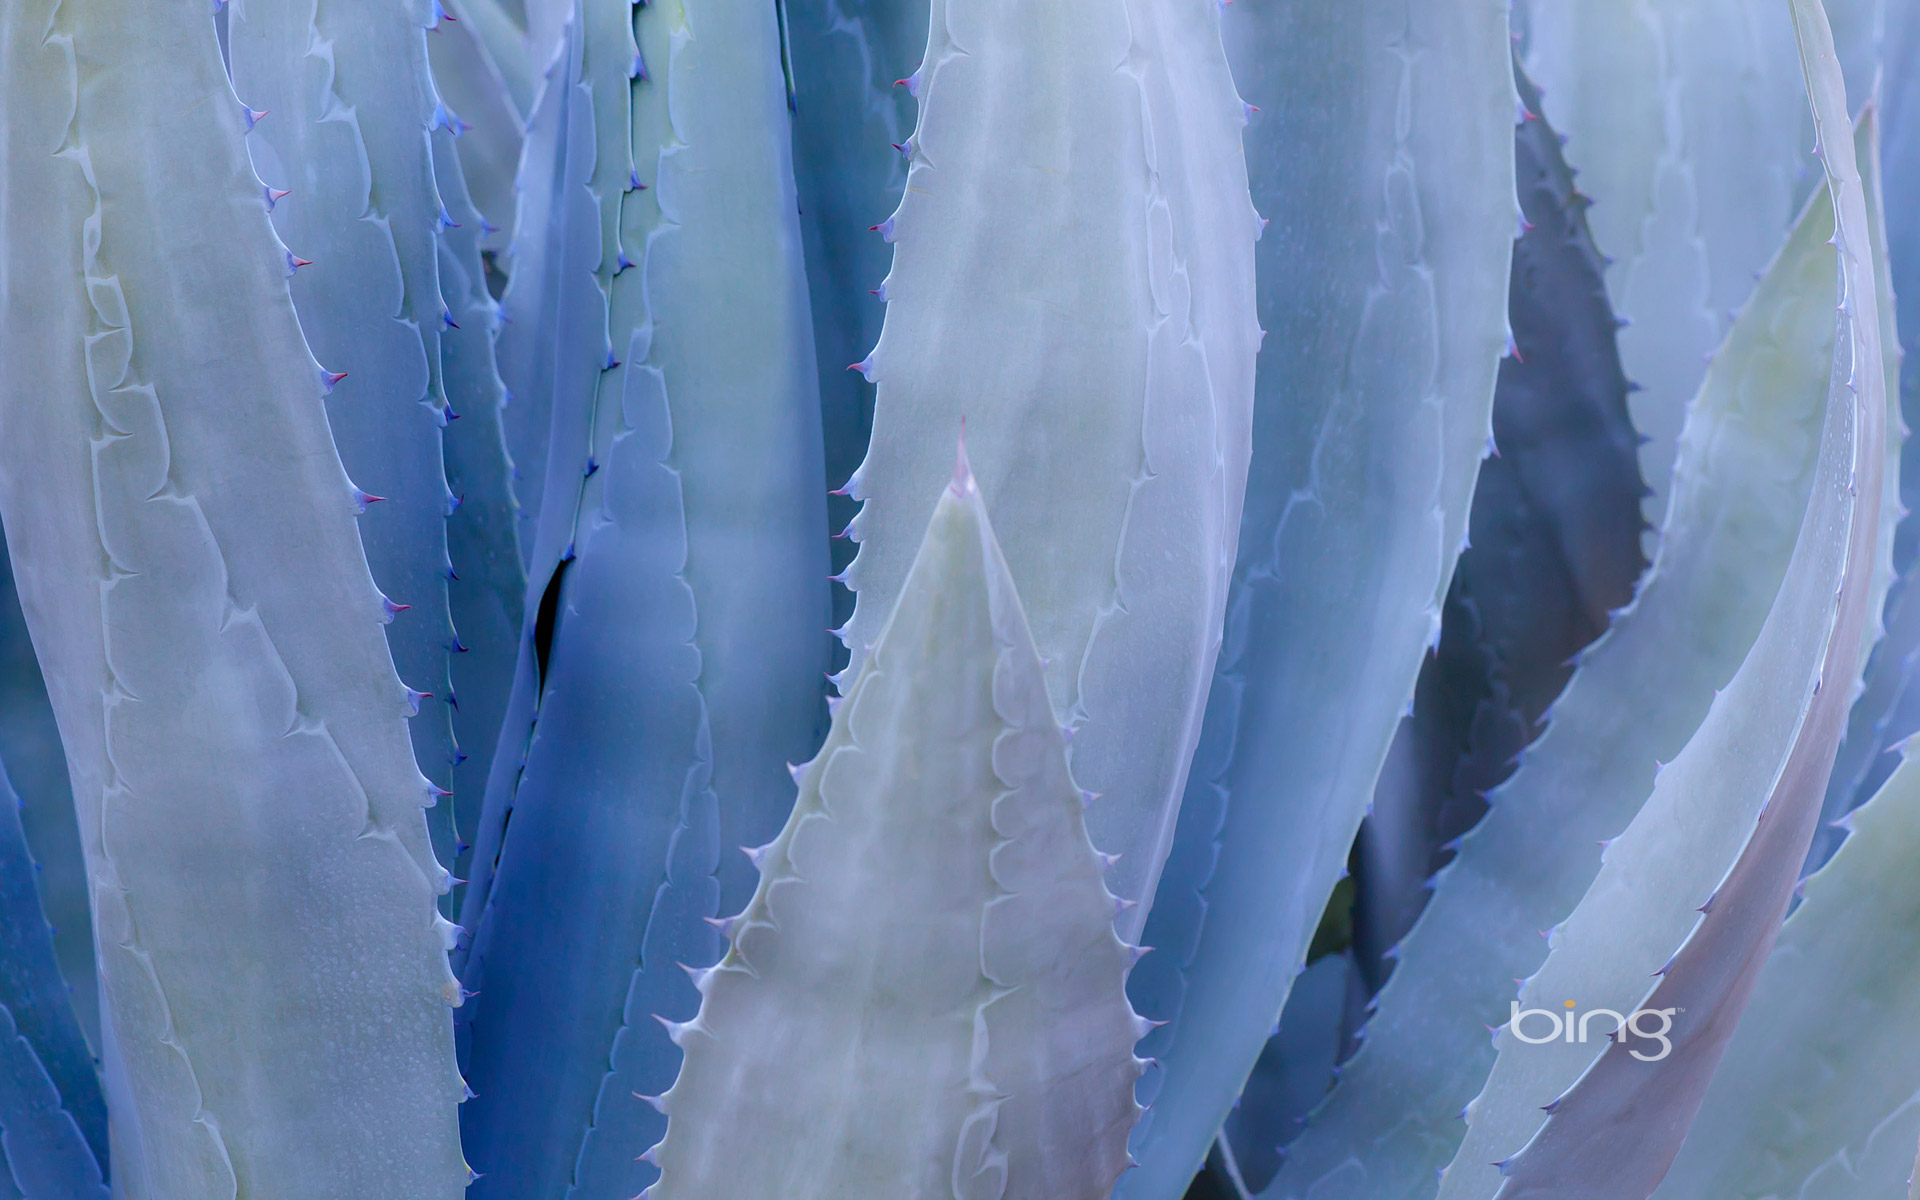 Close-up of a blue agave plant